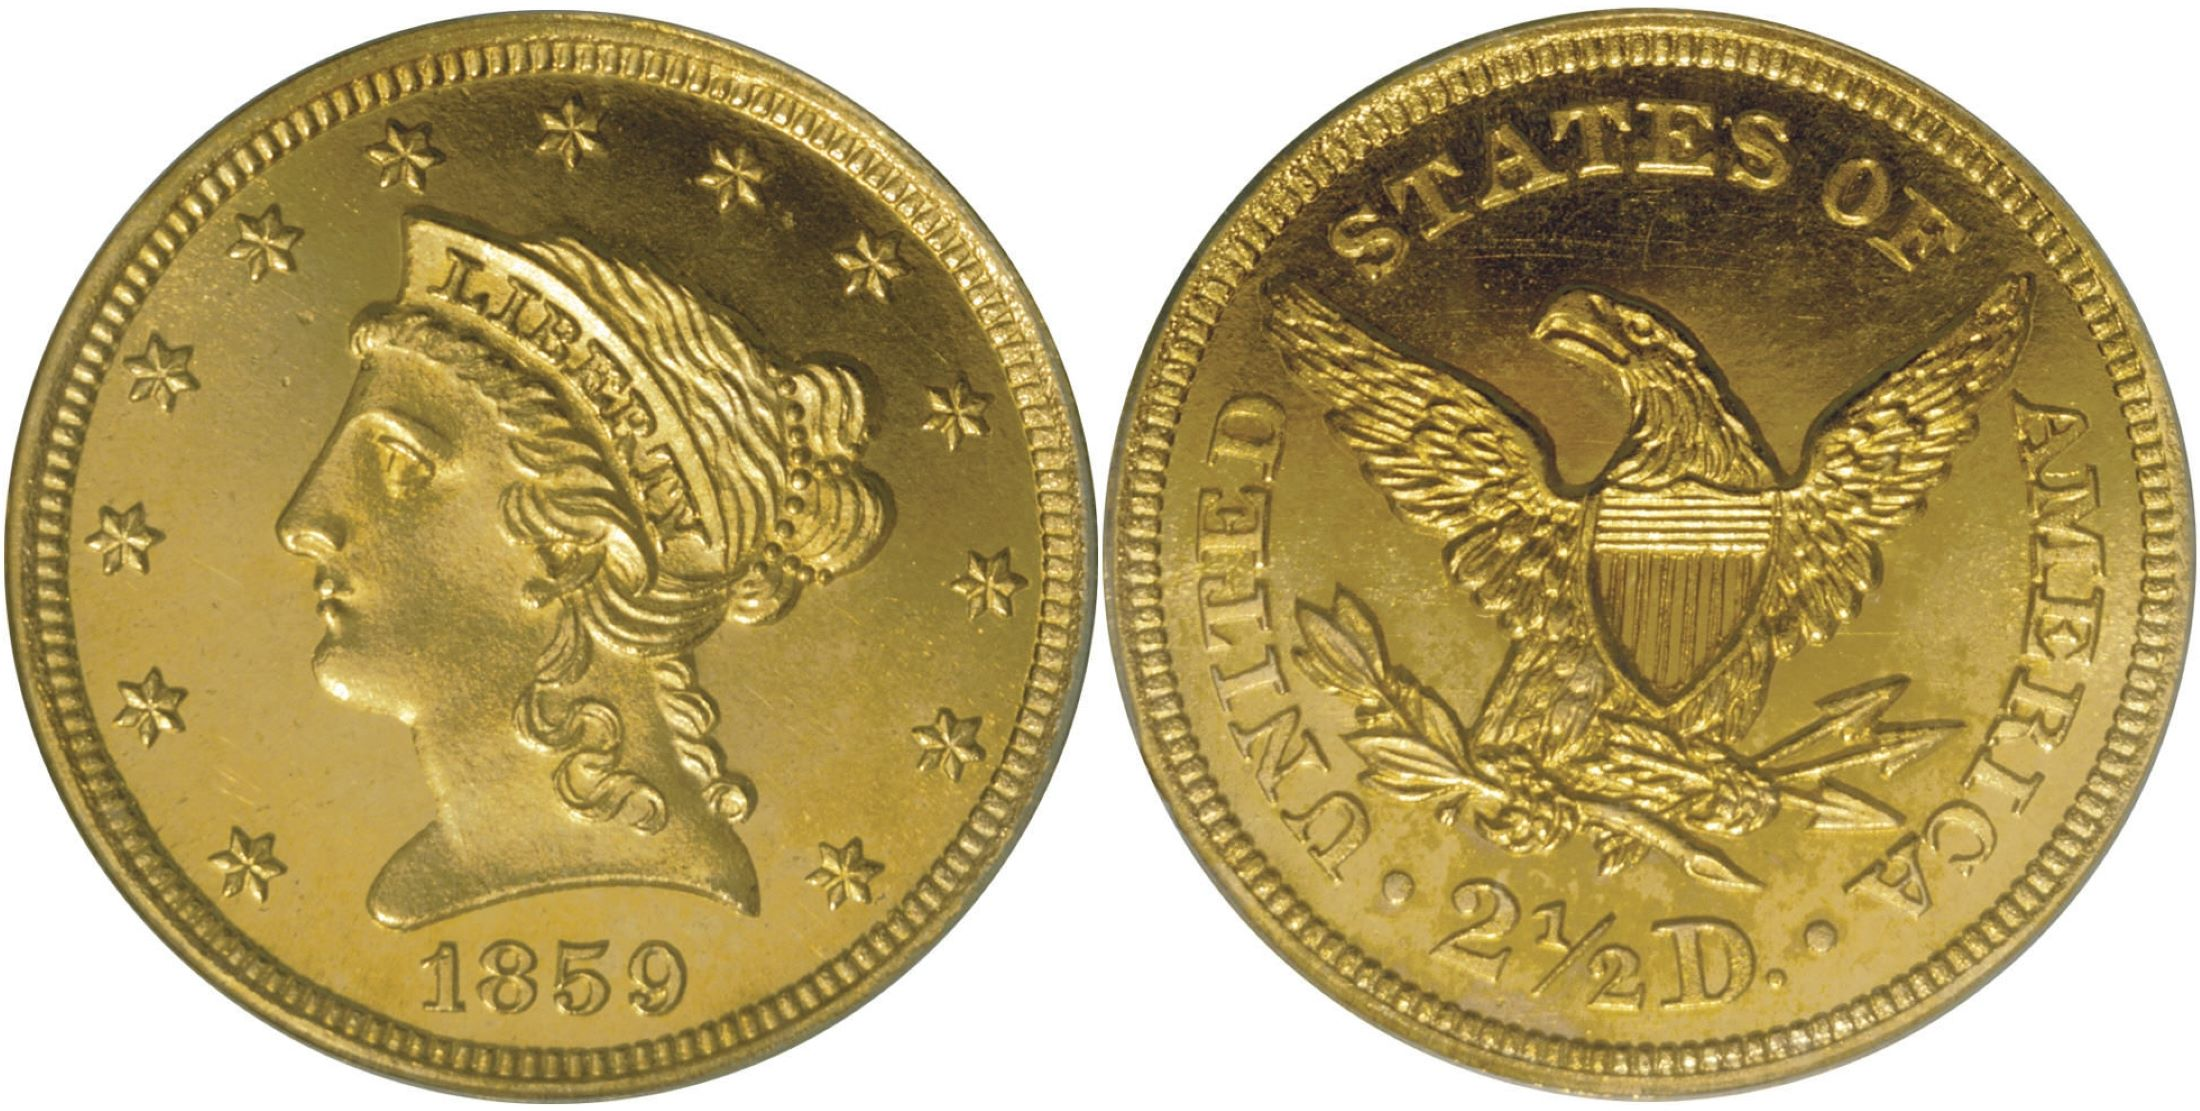 "PCGS PR66<BR>Ex Bass<BR>Image courtesy of <a href=""http://www.ha.com"" target=""_blank"">Heritage Numismatic Auctions</a>"